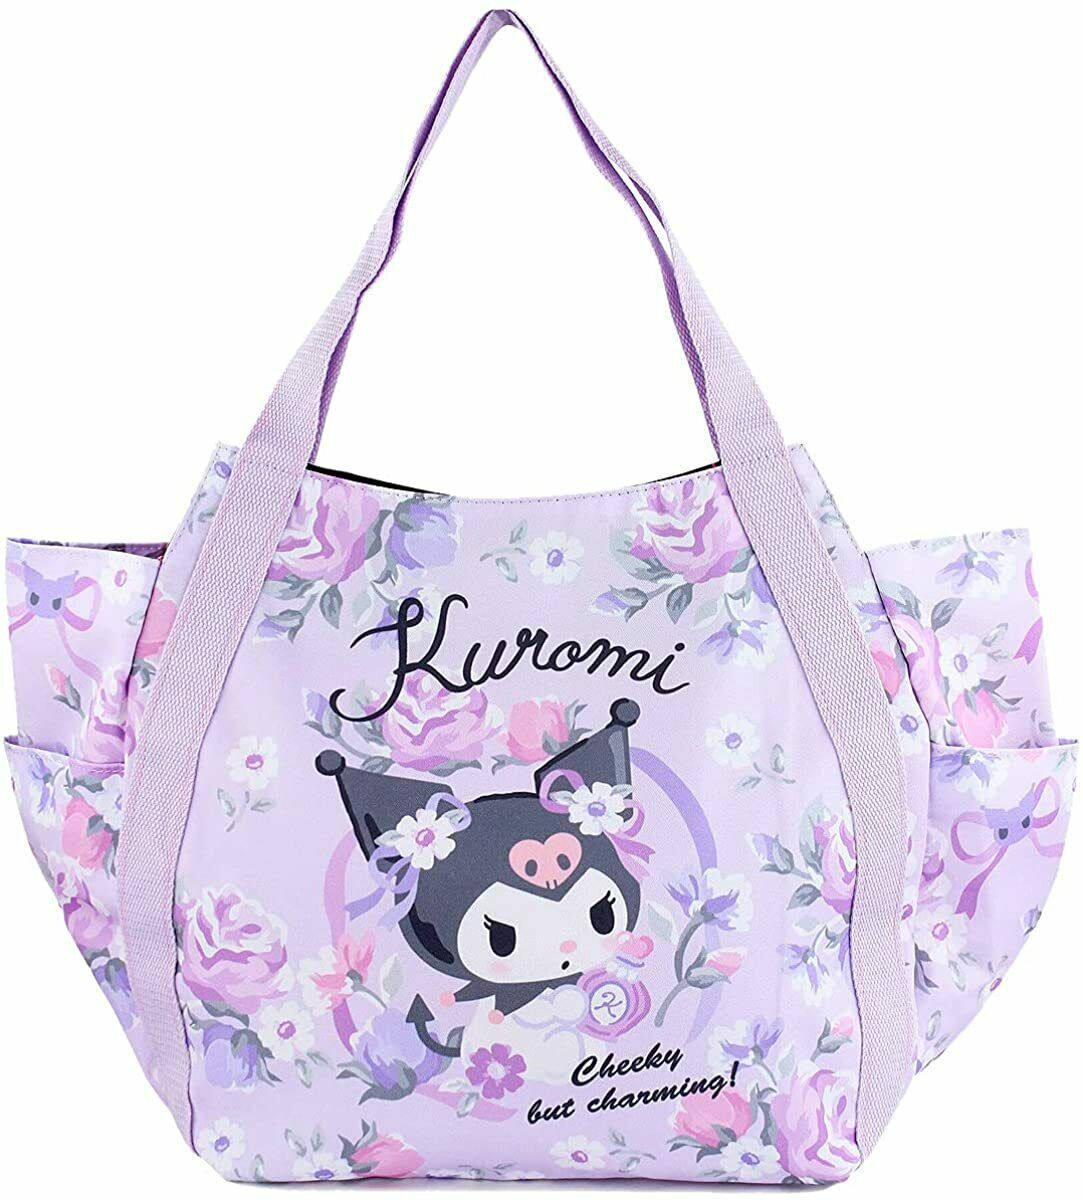 hello kitty bag / 40th Anniversary Mother's Bag Tote